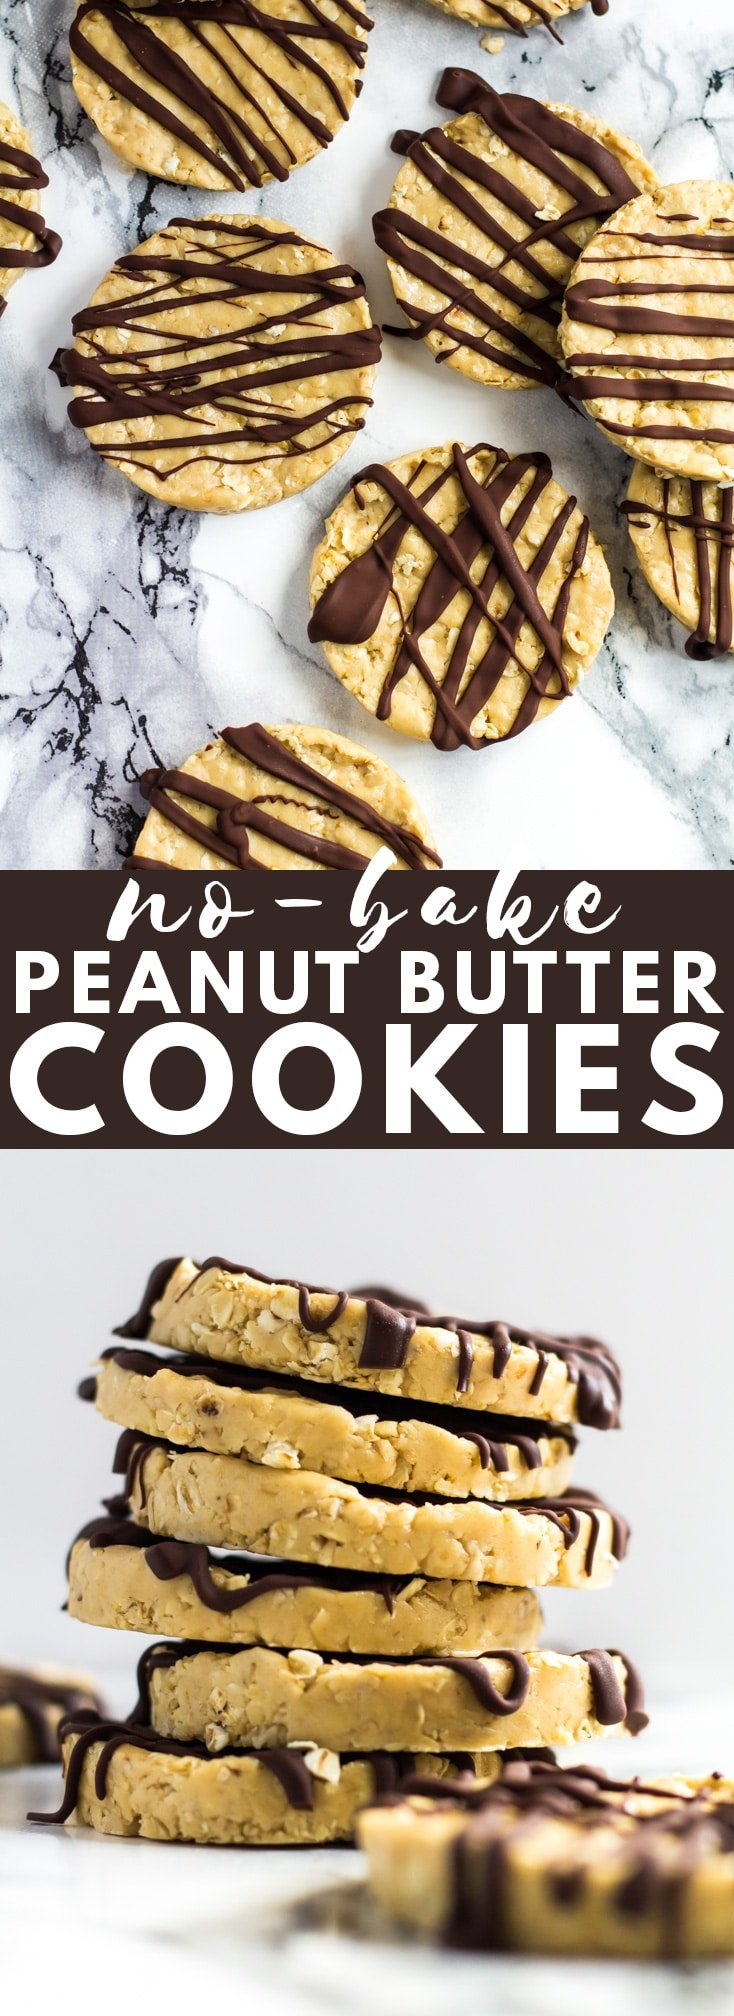 A Pinterest image of No-Bake Peanut Butter Cookies with text overlay.